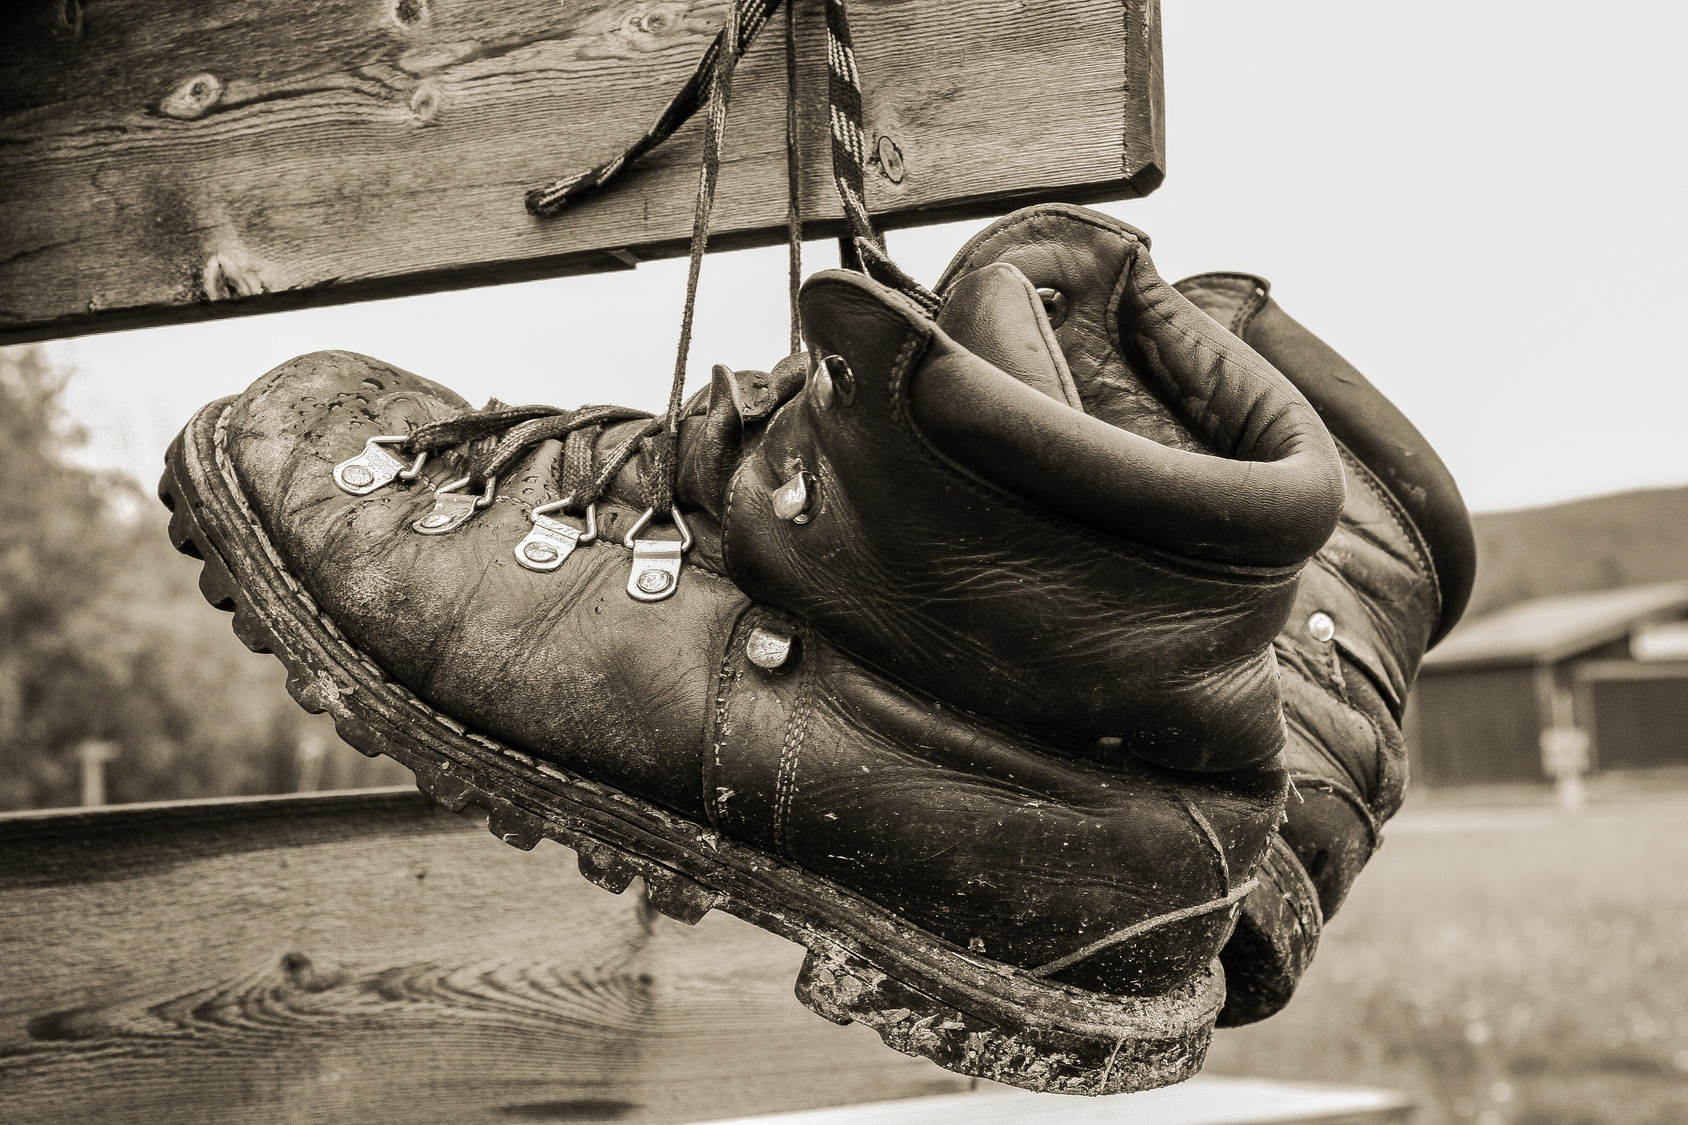 how-to-dry-wet-work-boots-fast.jpg